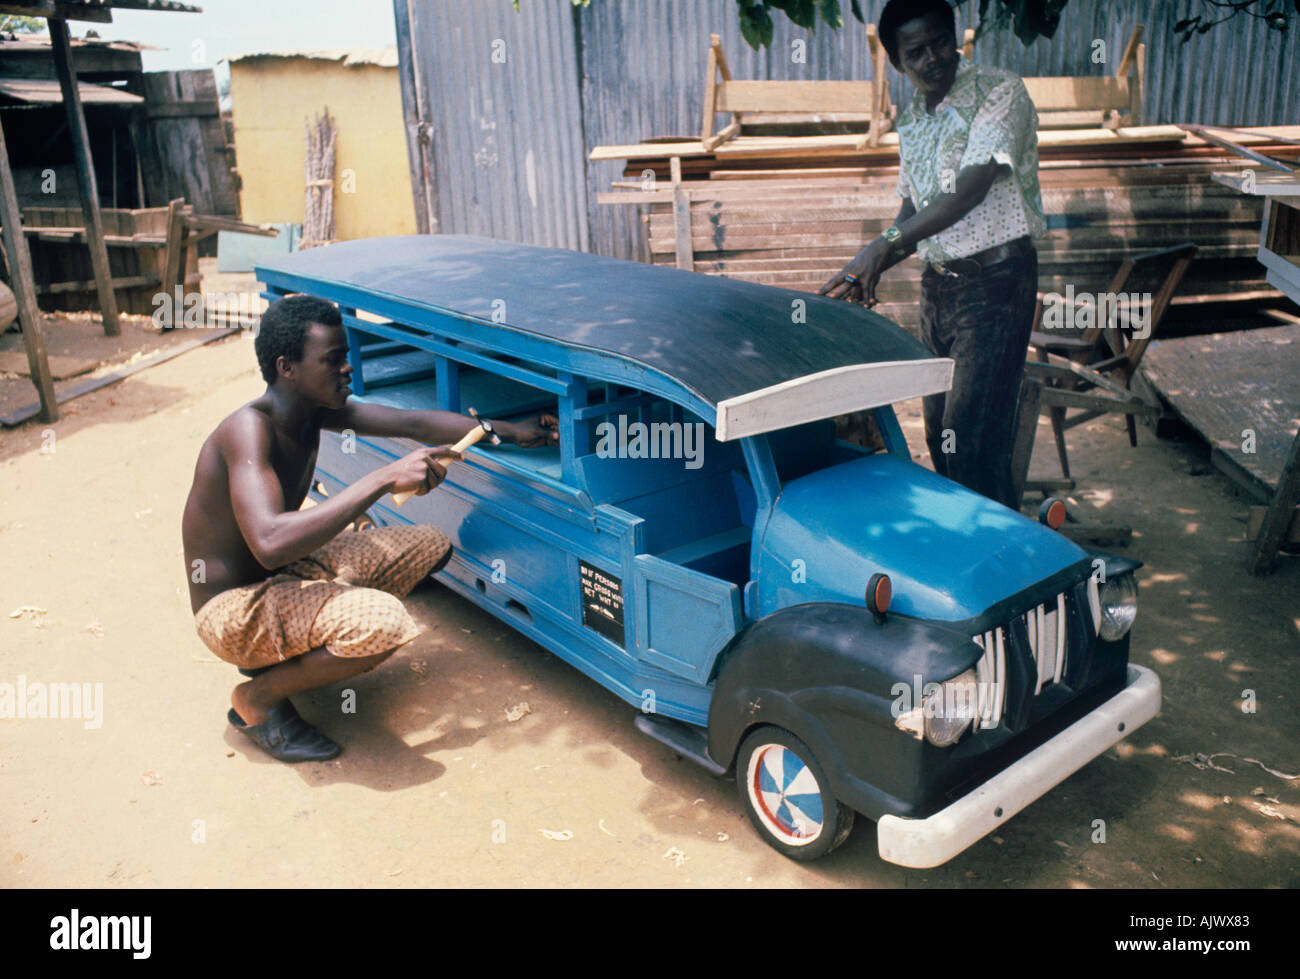 Ghanaians seeking a grand funeral can order a splendid custom coffin shaped like a bus, a bird, a boat, or any dying wish - Stock Image